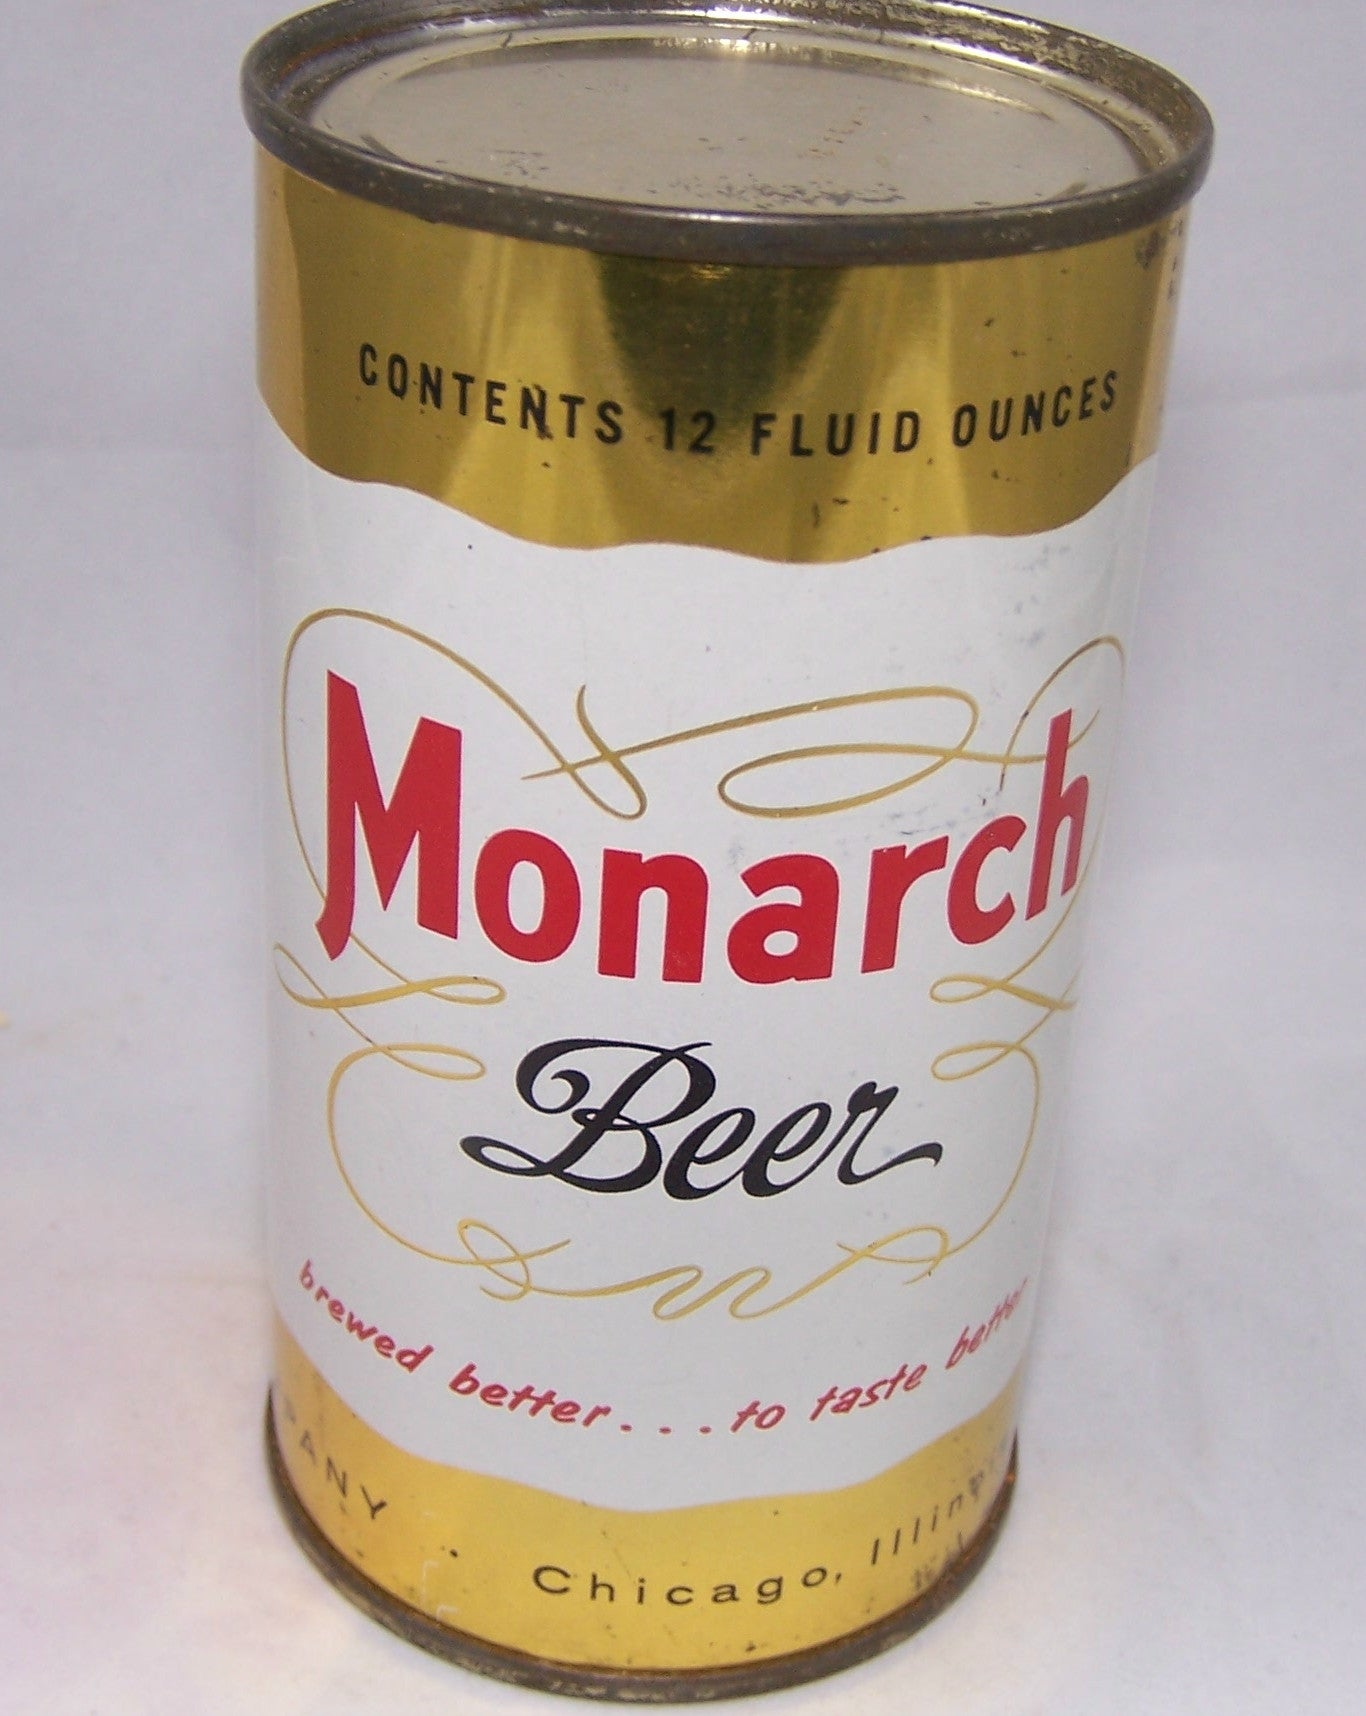 Monarch Beer, USBC 100-18, Grade 1 Sold on 07/05/16